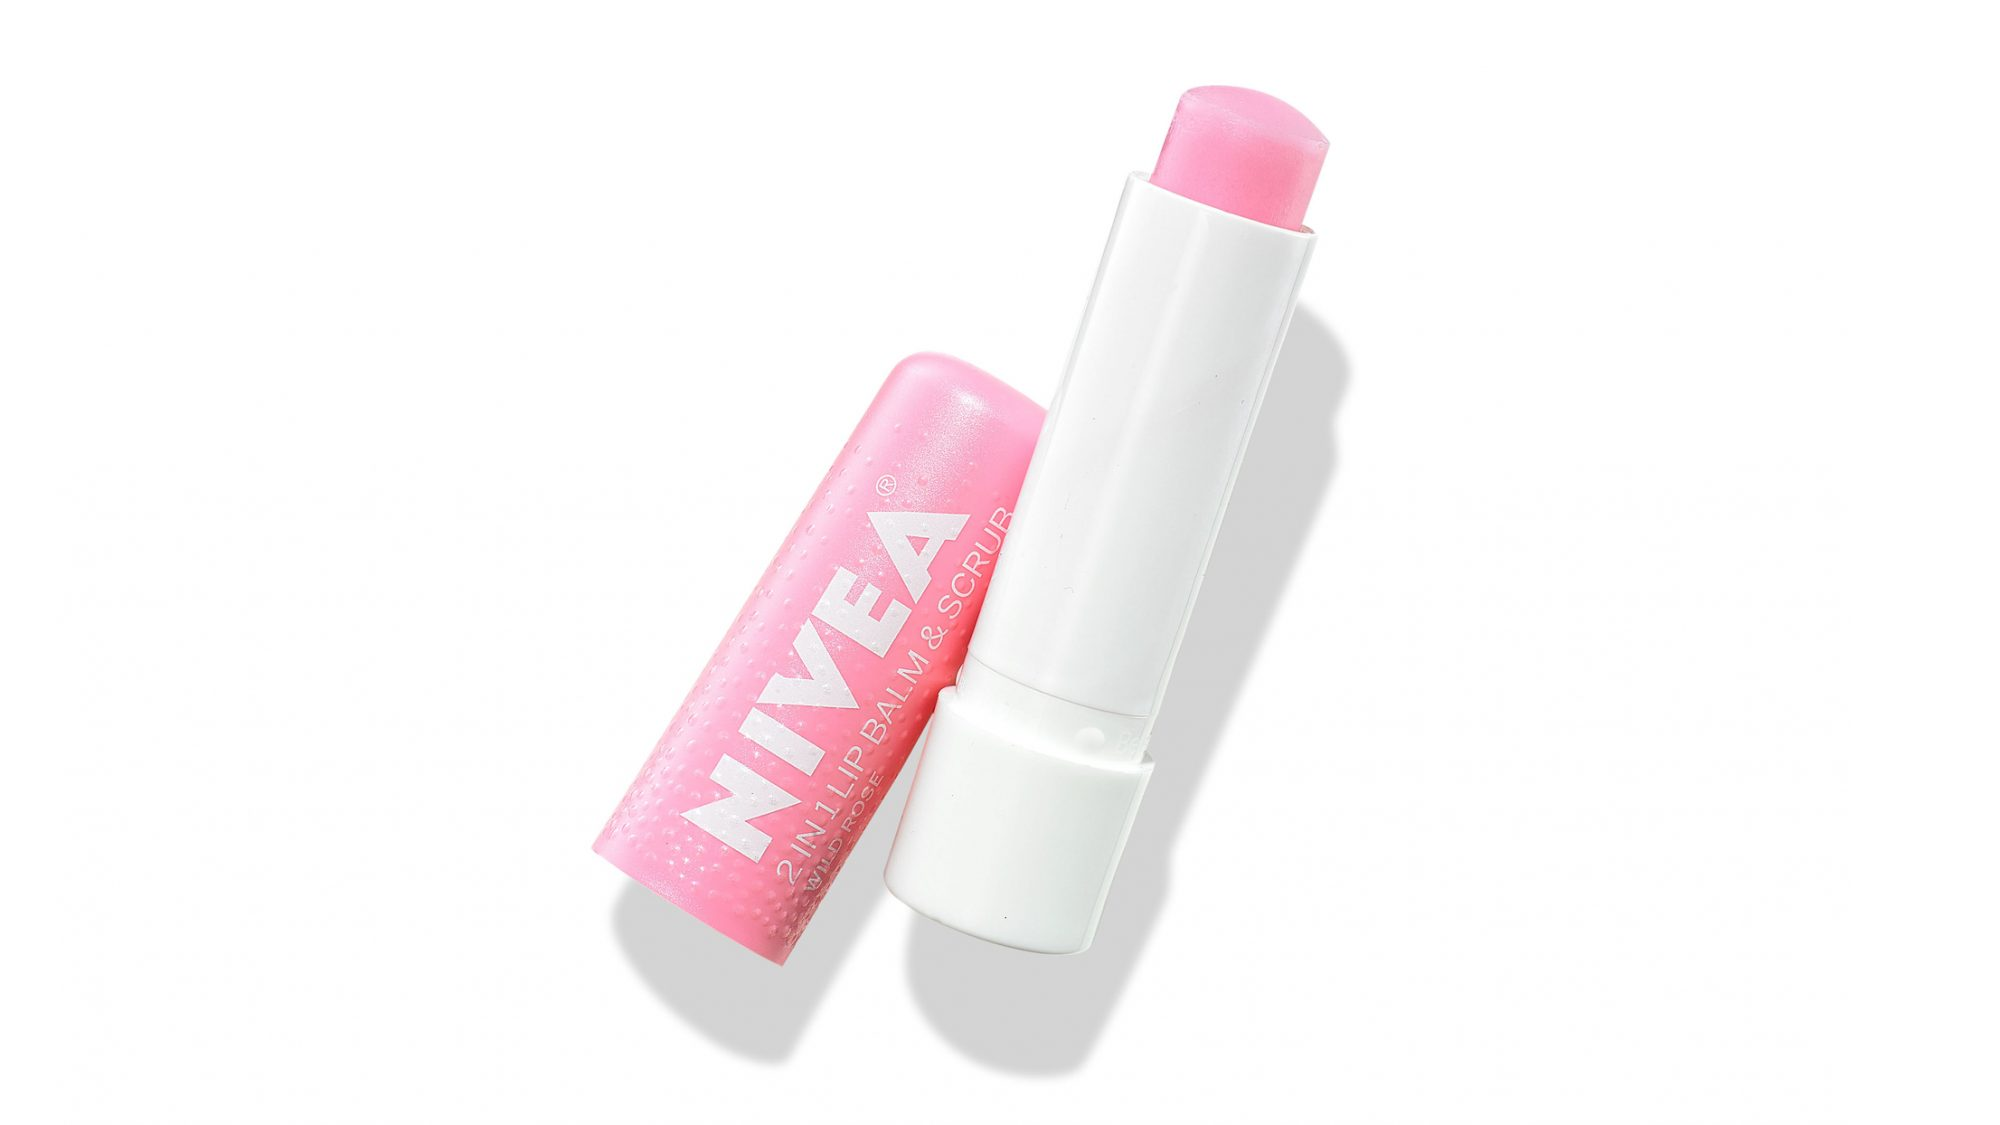 NIVEA Lip Balm and Scrub